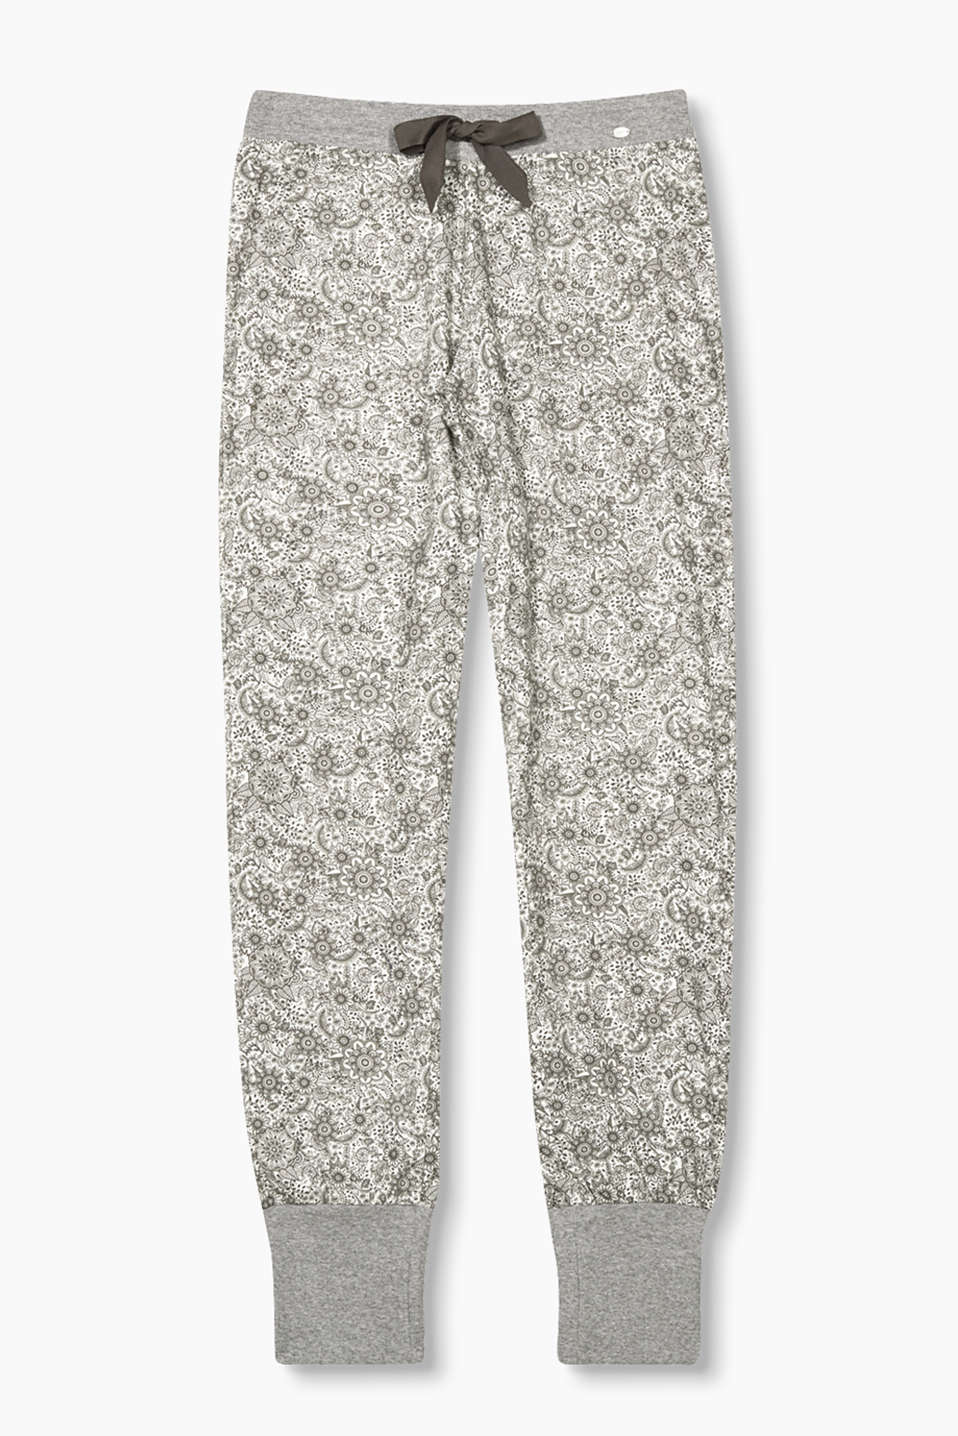 Comfort wear: soft pyjama bottoms with an all-over floral print, in pure cotton